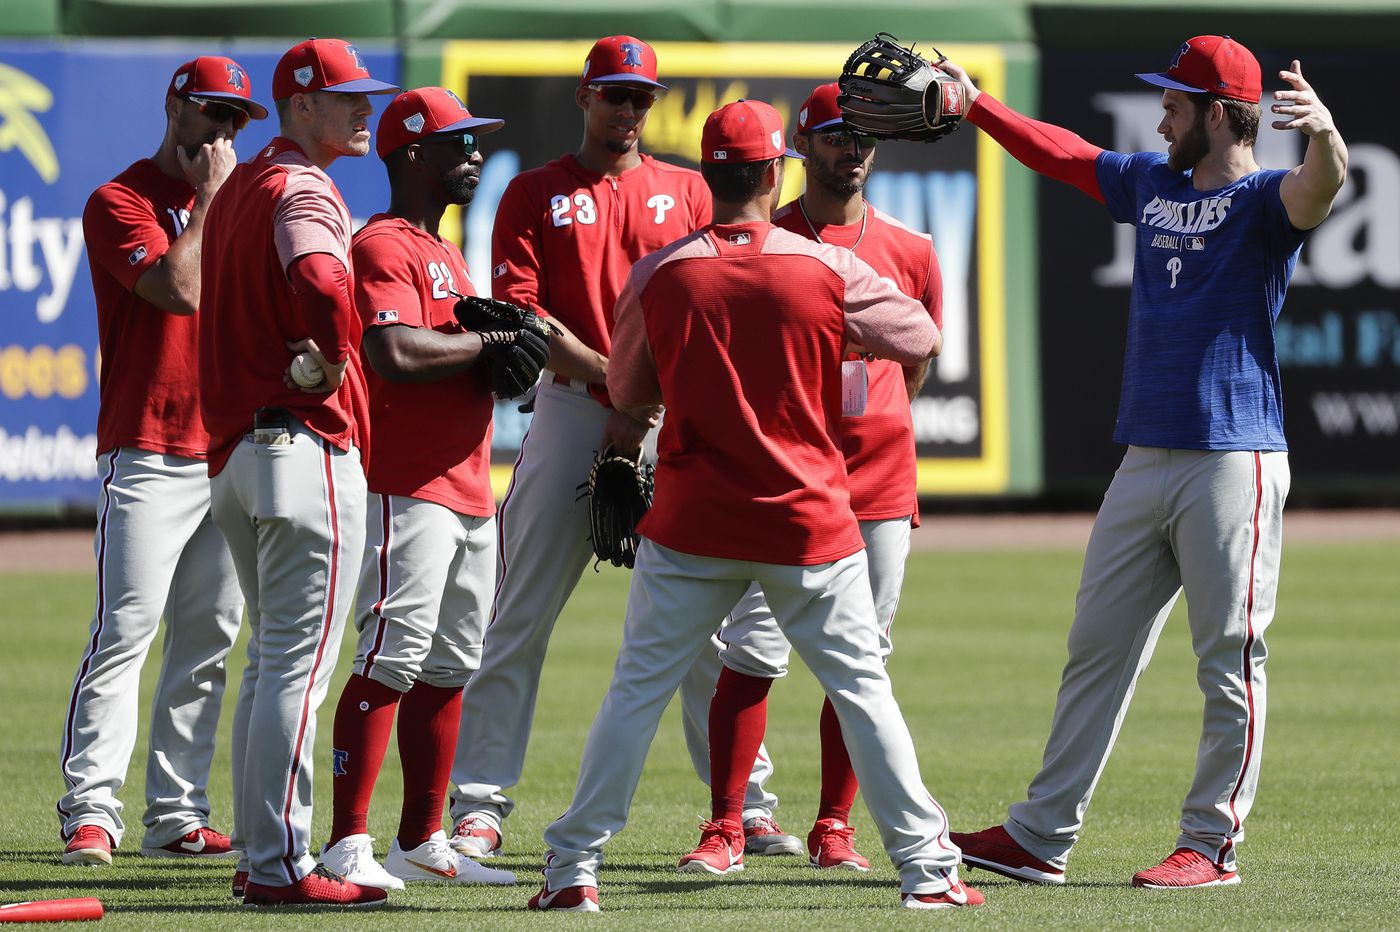 Phillies podcast: The Bryce Harper buzz, outfield changes, starting pitching issues and win predictions